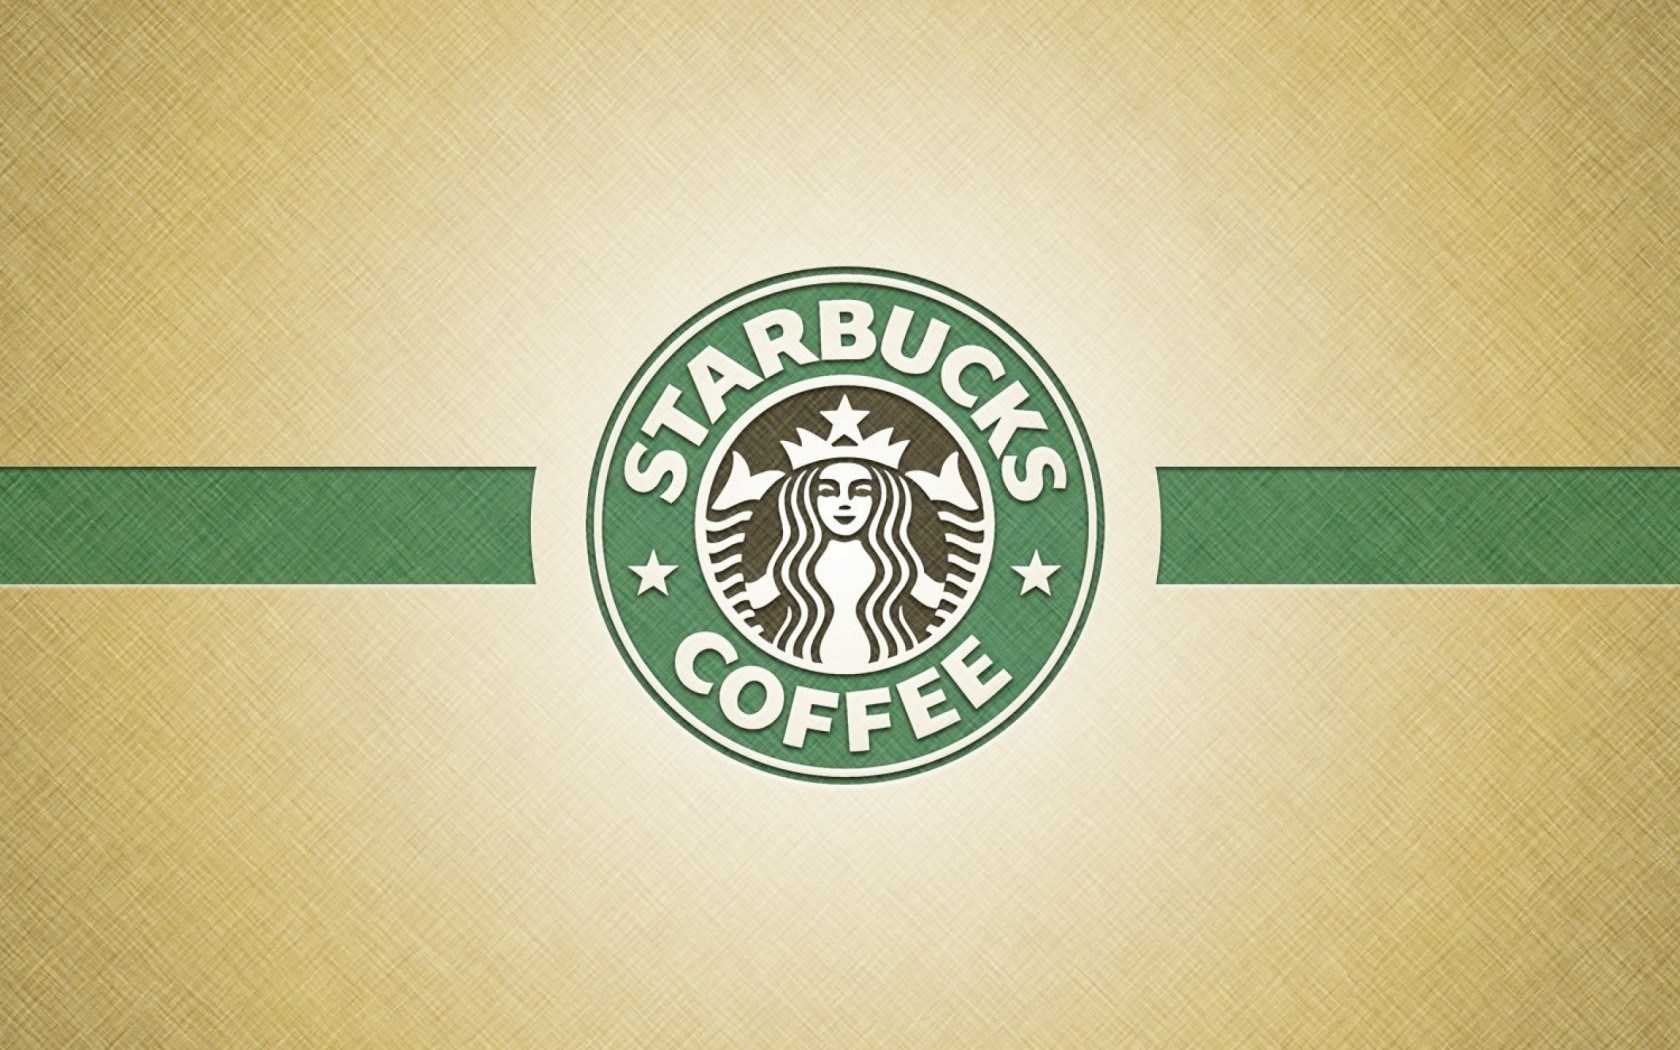 Starbucks Ppt Background - Powerpoint Backgrounds For Free Throughout Starbucks Powerpoint Template